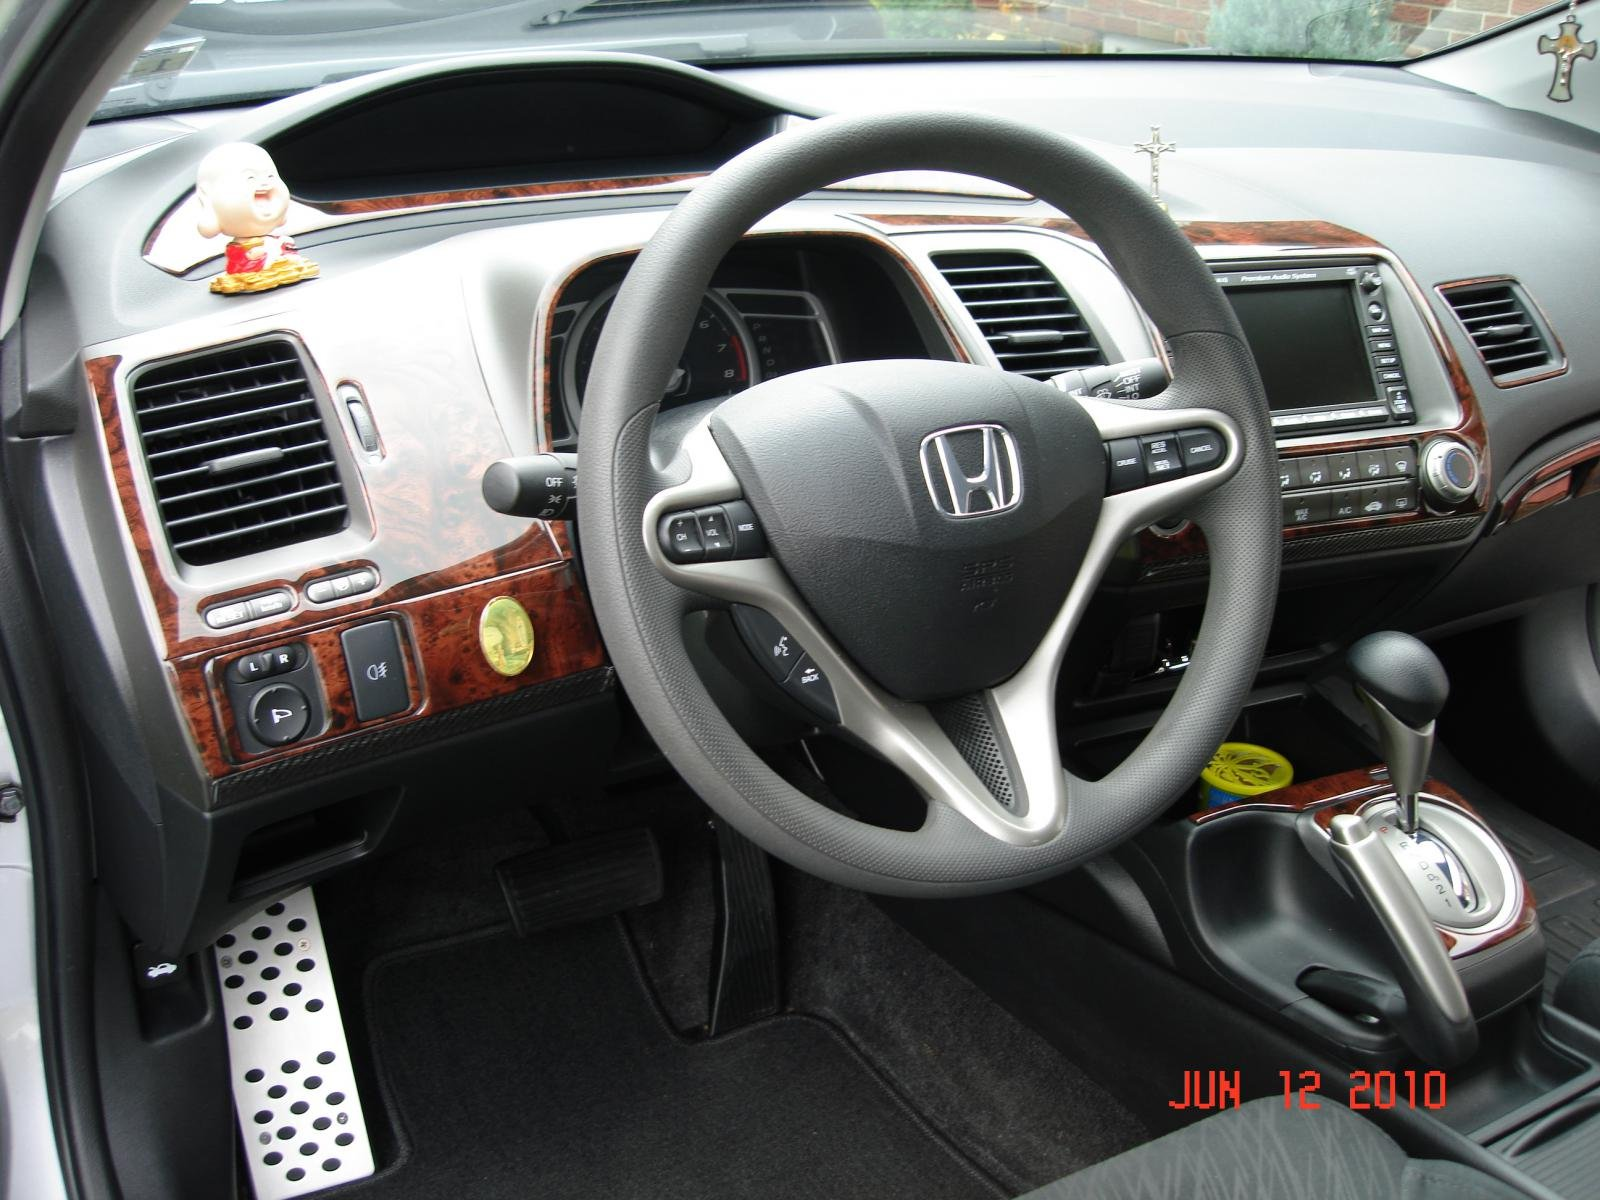 My Benevento Wood Trim On 2007 Honda Civic Coupe Dsc03391 Jpg